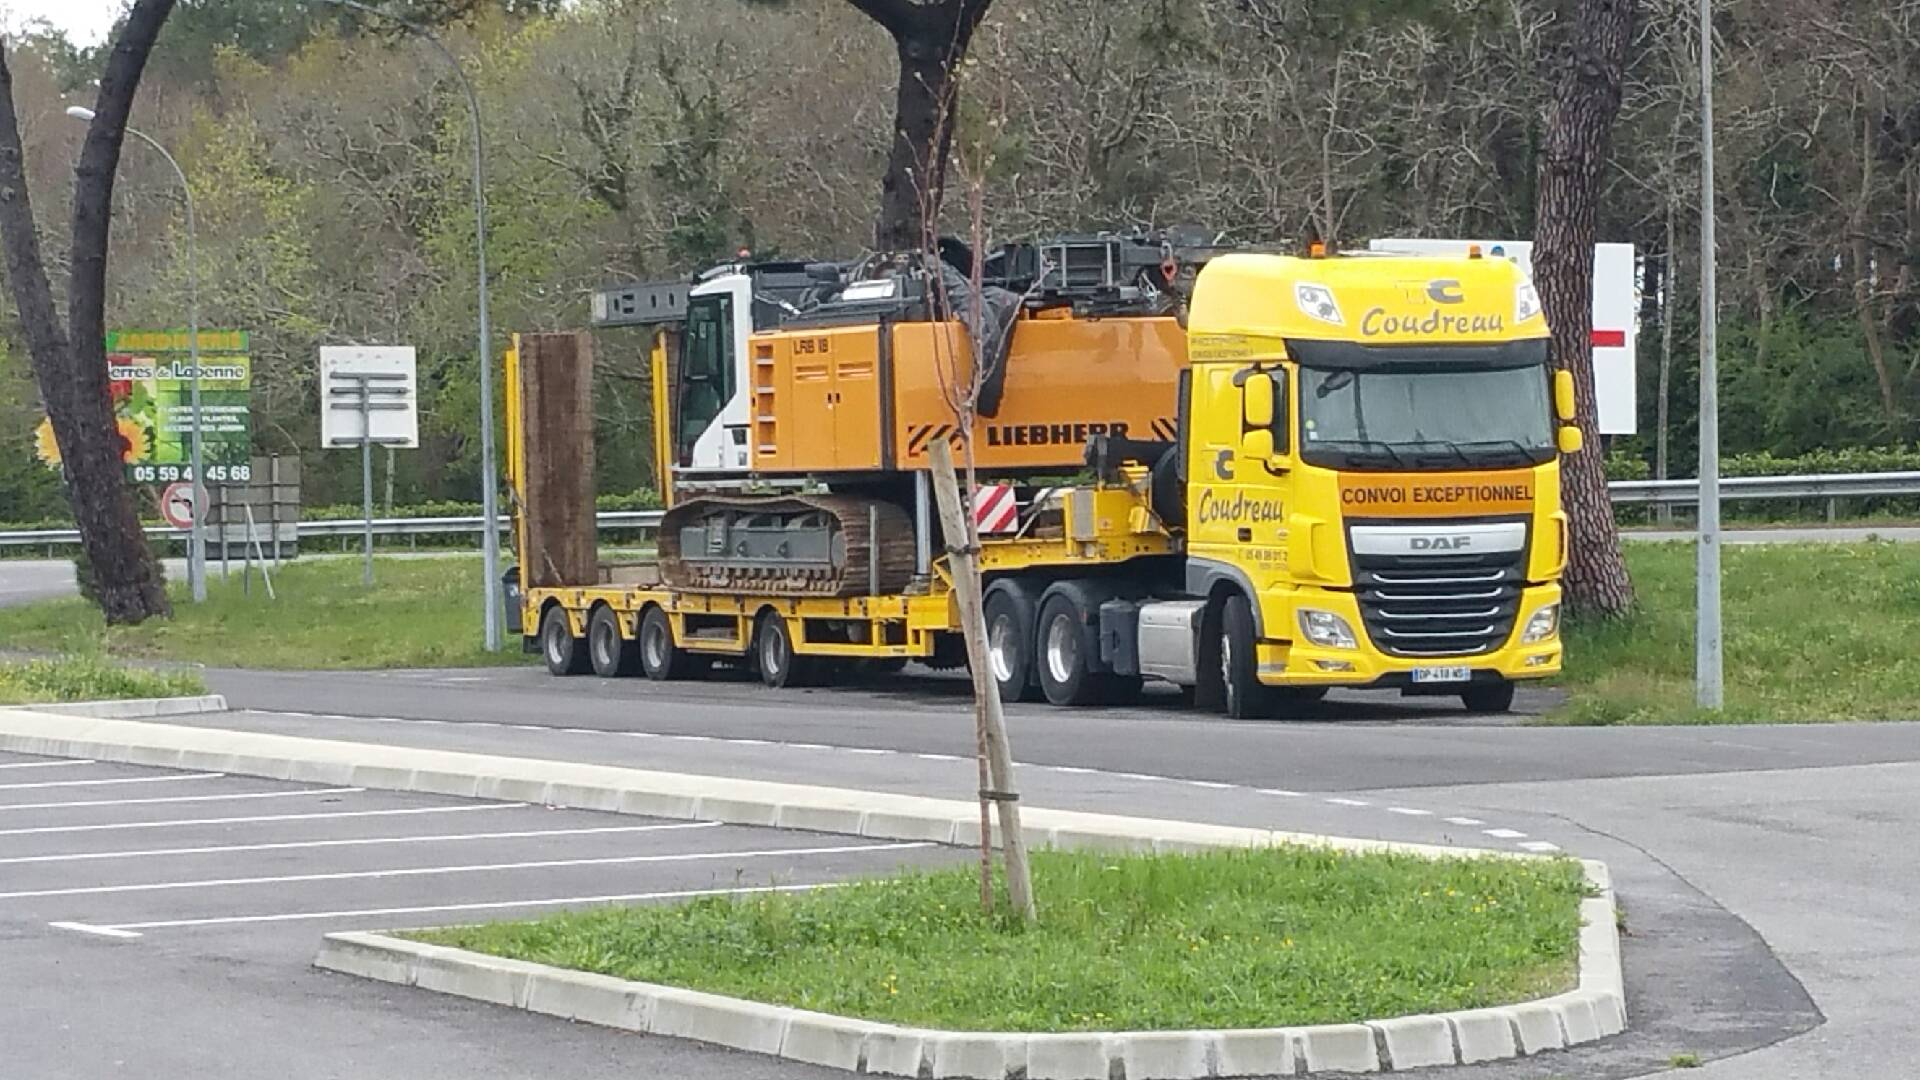 camions-3-1-transports